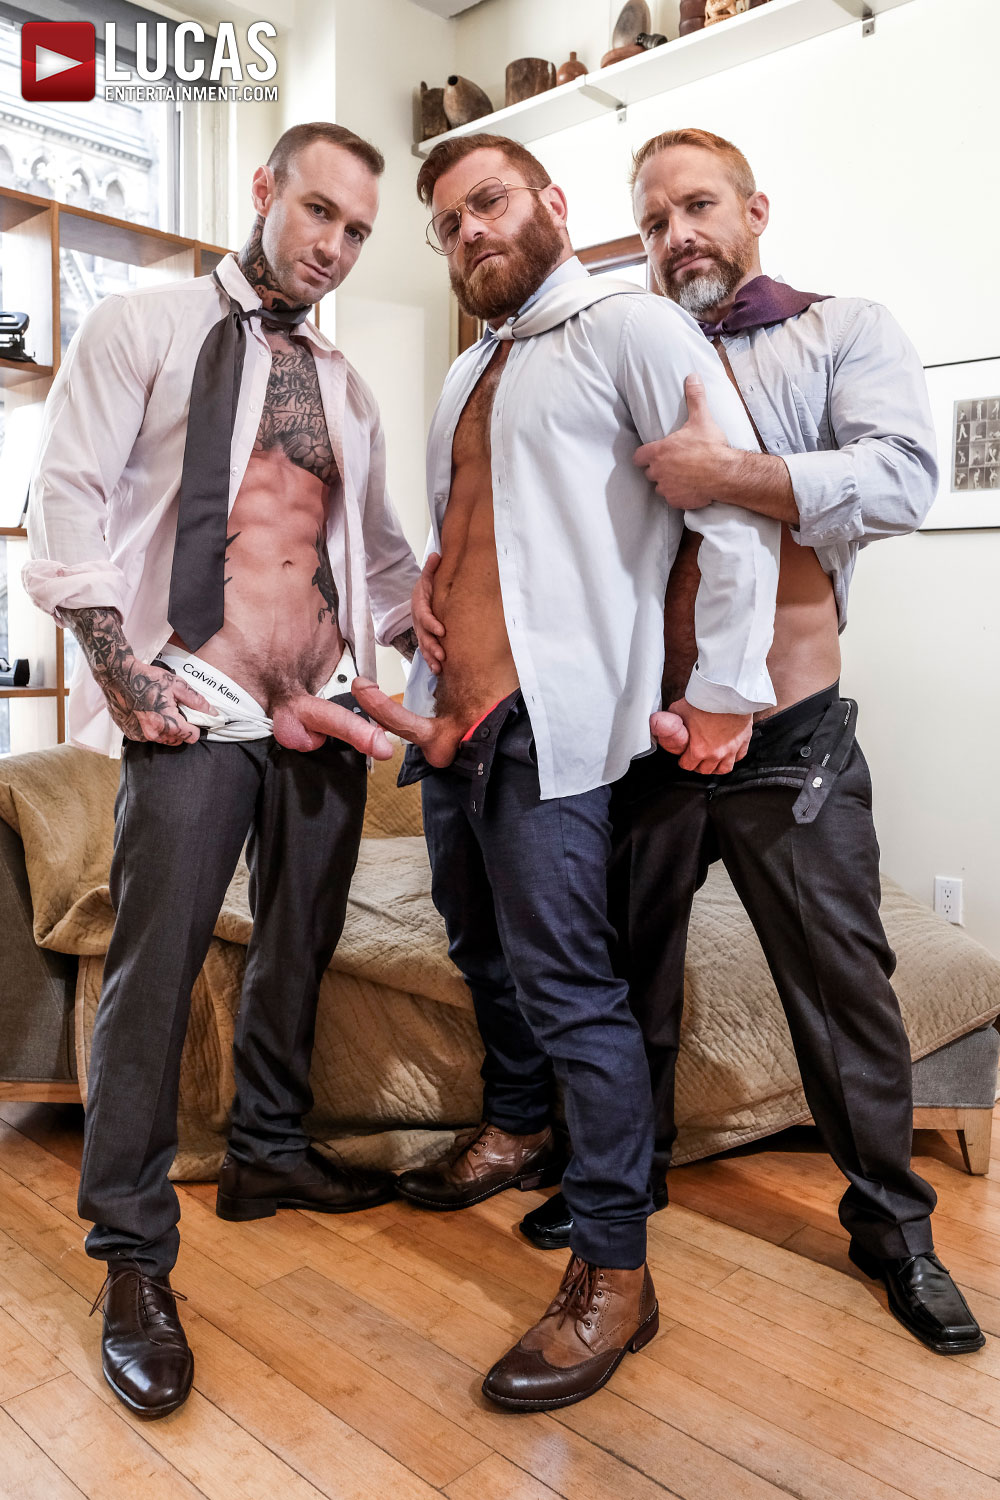 Riley Mitchel Services His Bosses Dylan James And Dirk Caber - Gay Movies - Lucas Entertainment